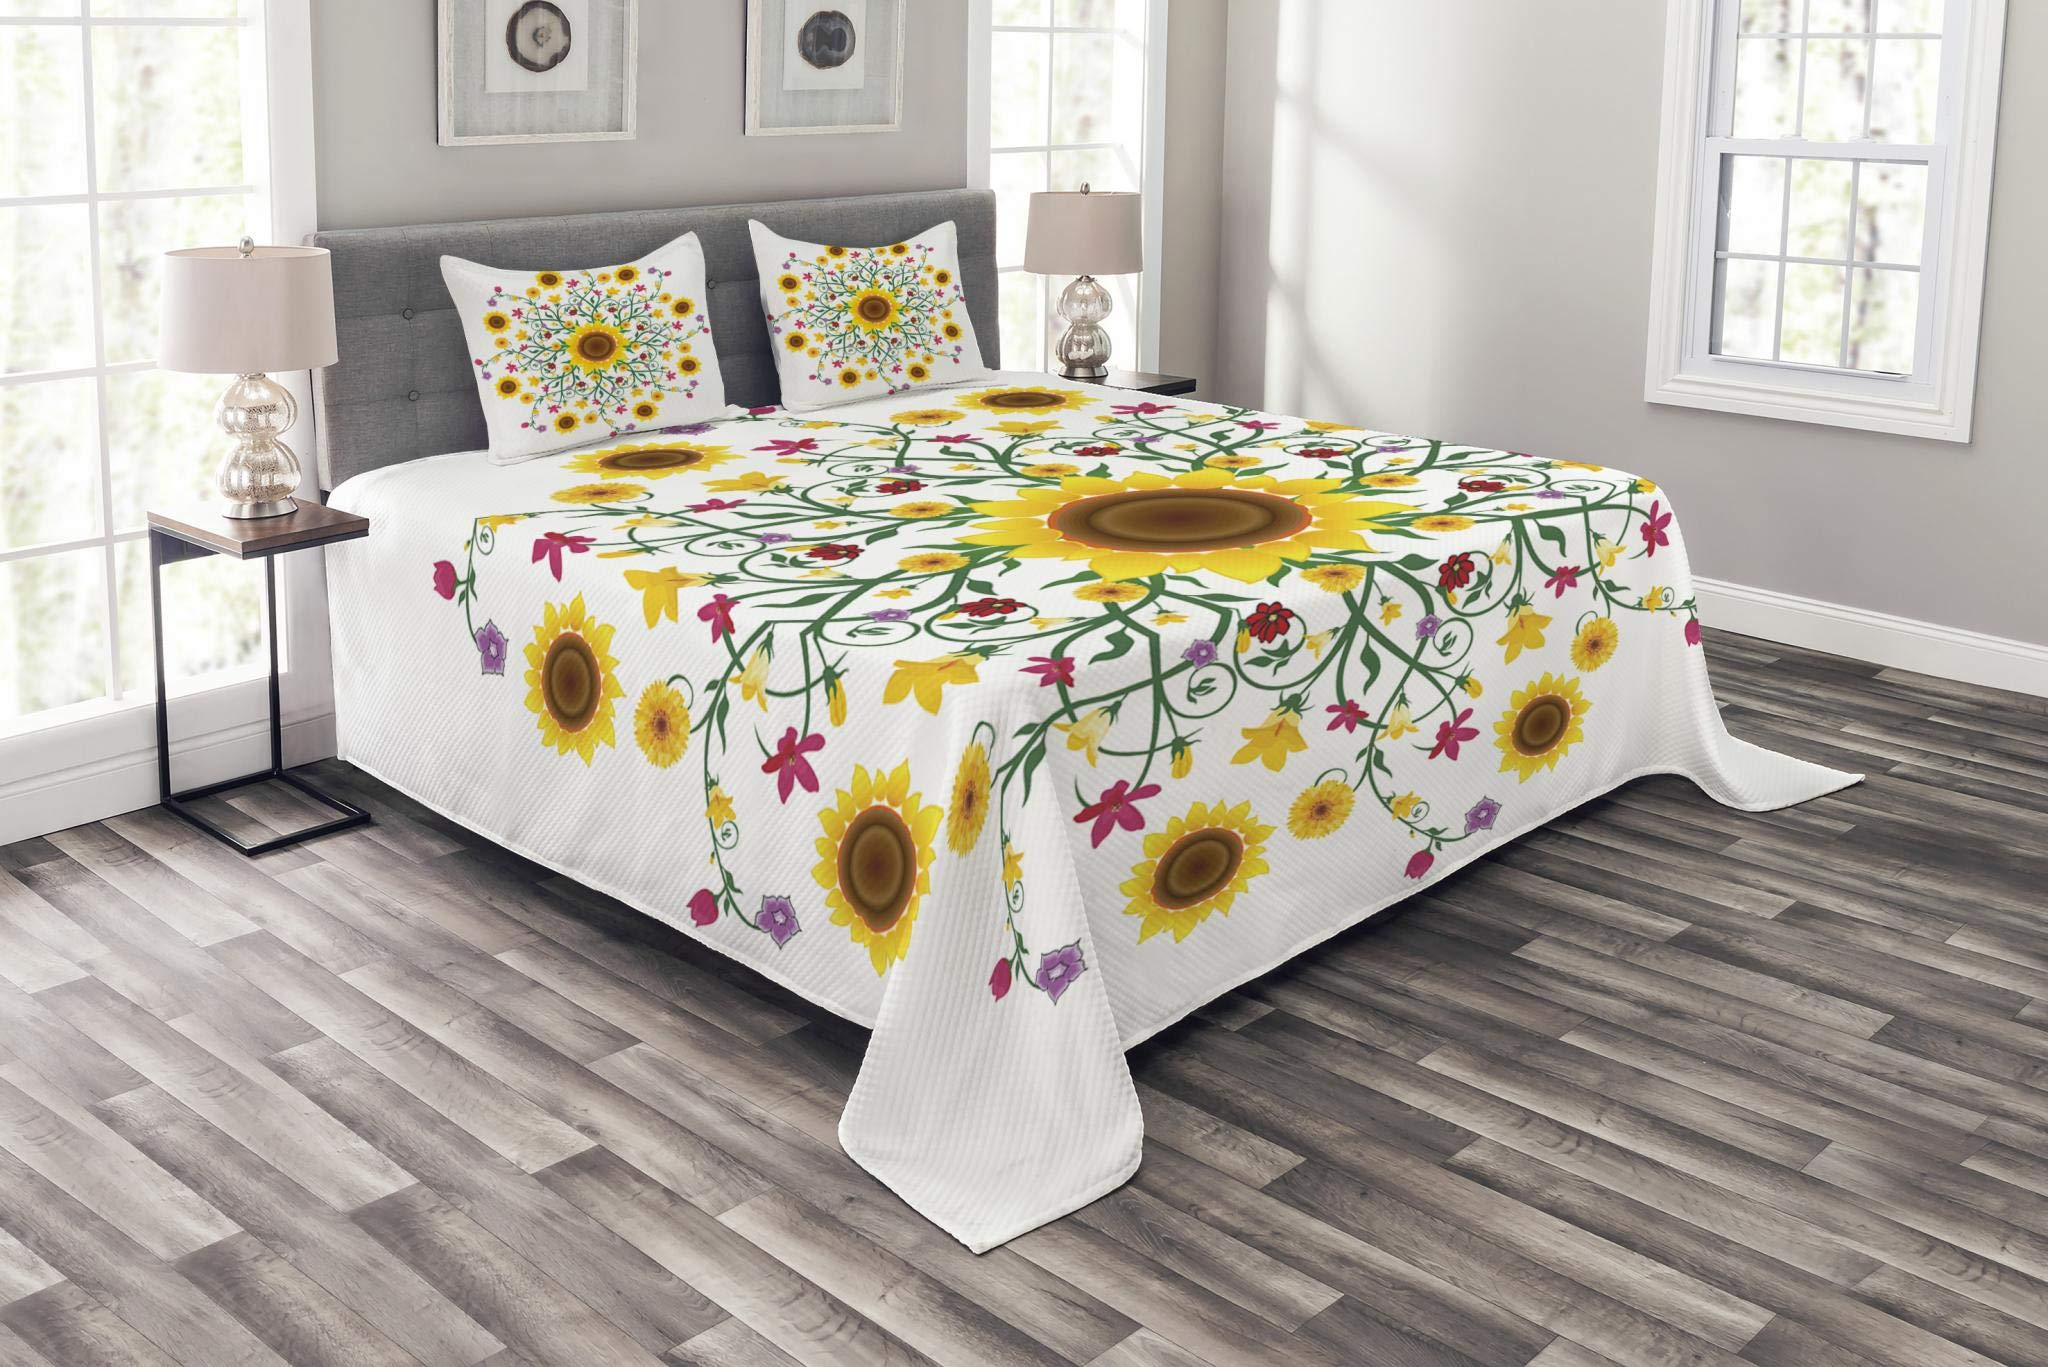 Lunarable Yellow Mandala Bedspread, Round Motif with Wild Spring Blooms and Sunflowers Botanical Swirls Corsage, Decorative Quilted 3 Piece Coverlet Set with 2 Pillow Shams, Queen Size, Mustard Green by Lunarable